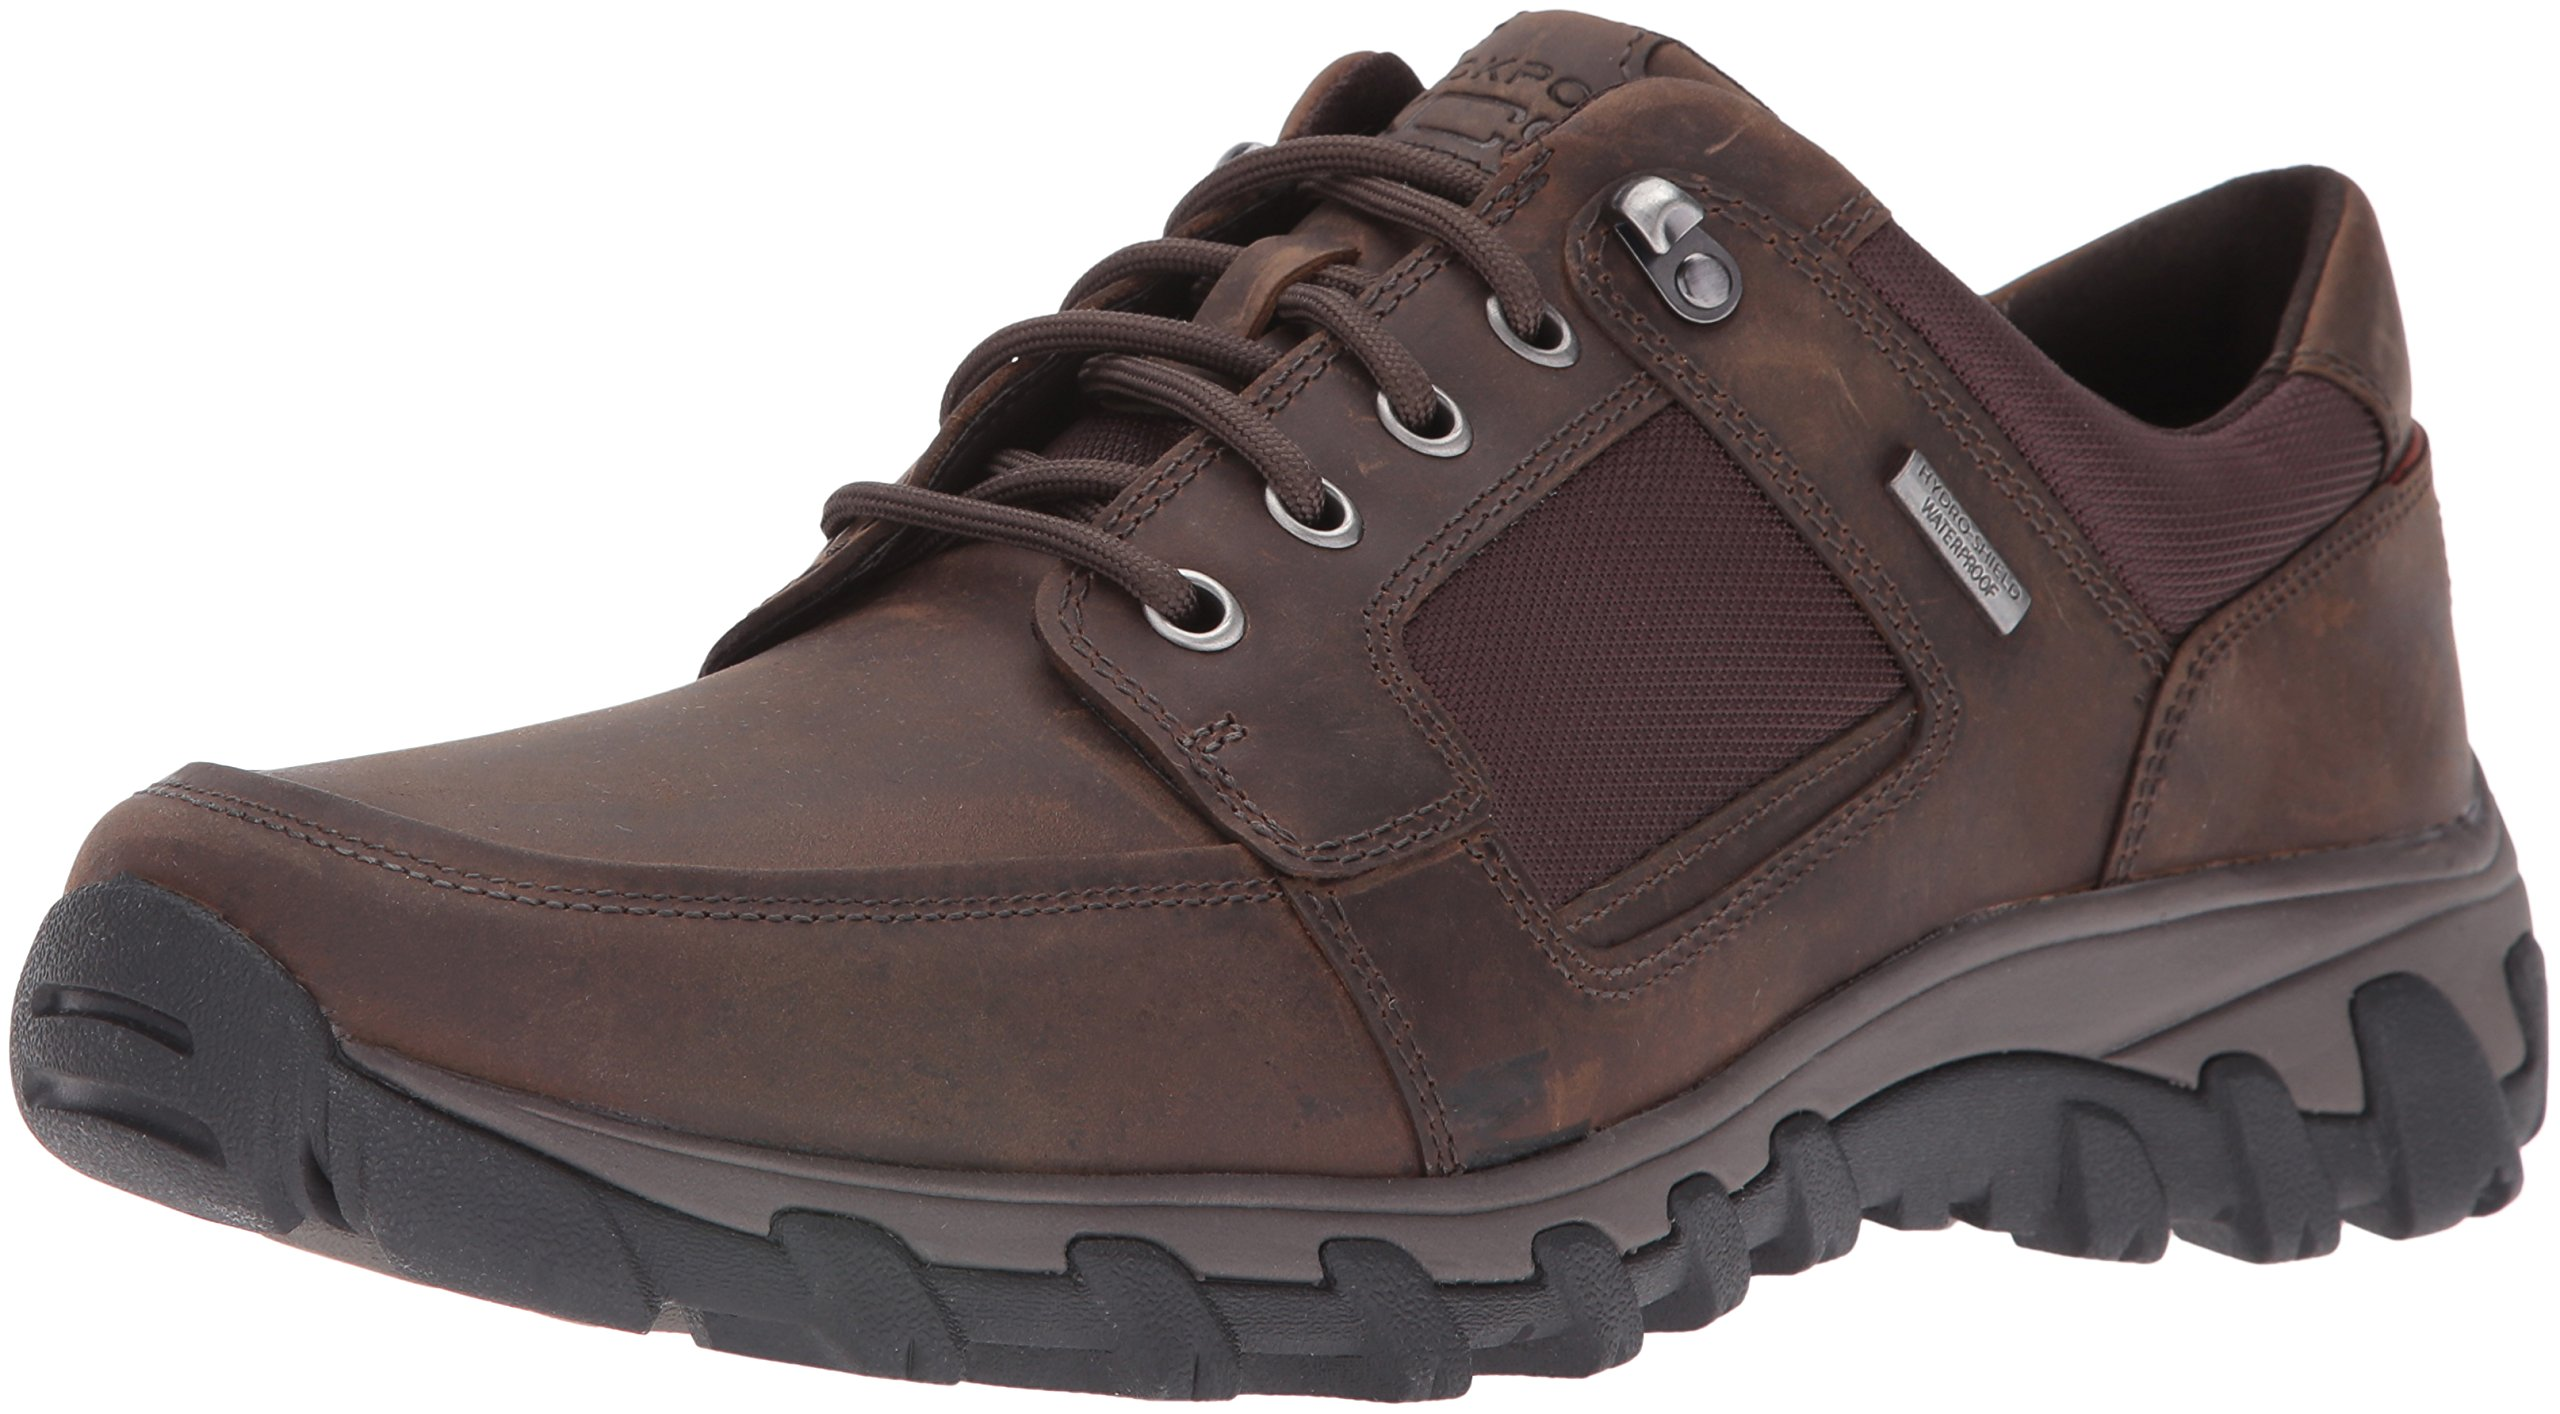 Rockport Men's Cold Springs Plus Lace to Toe Walking Shoe- Dark Brown-11.5  M by Rockport